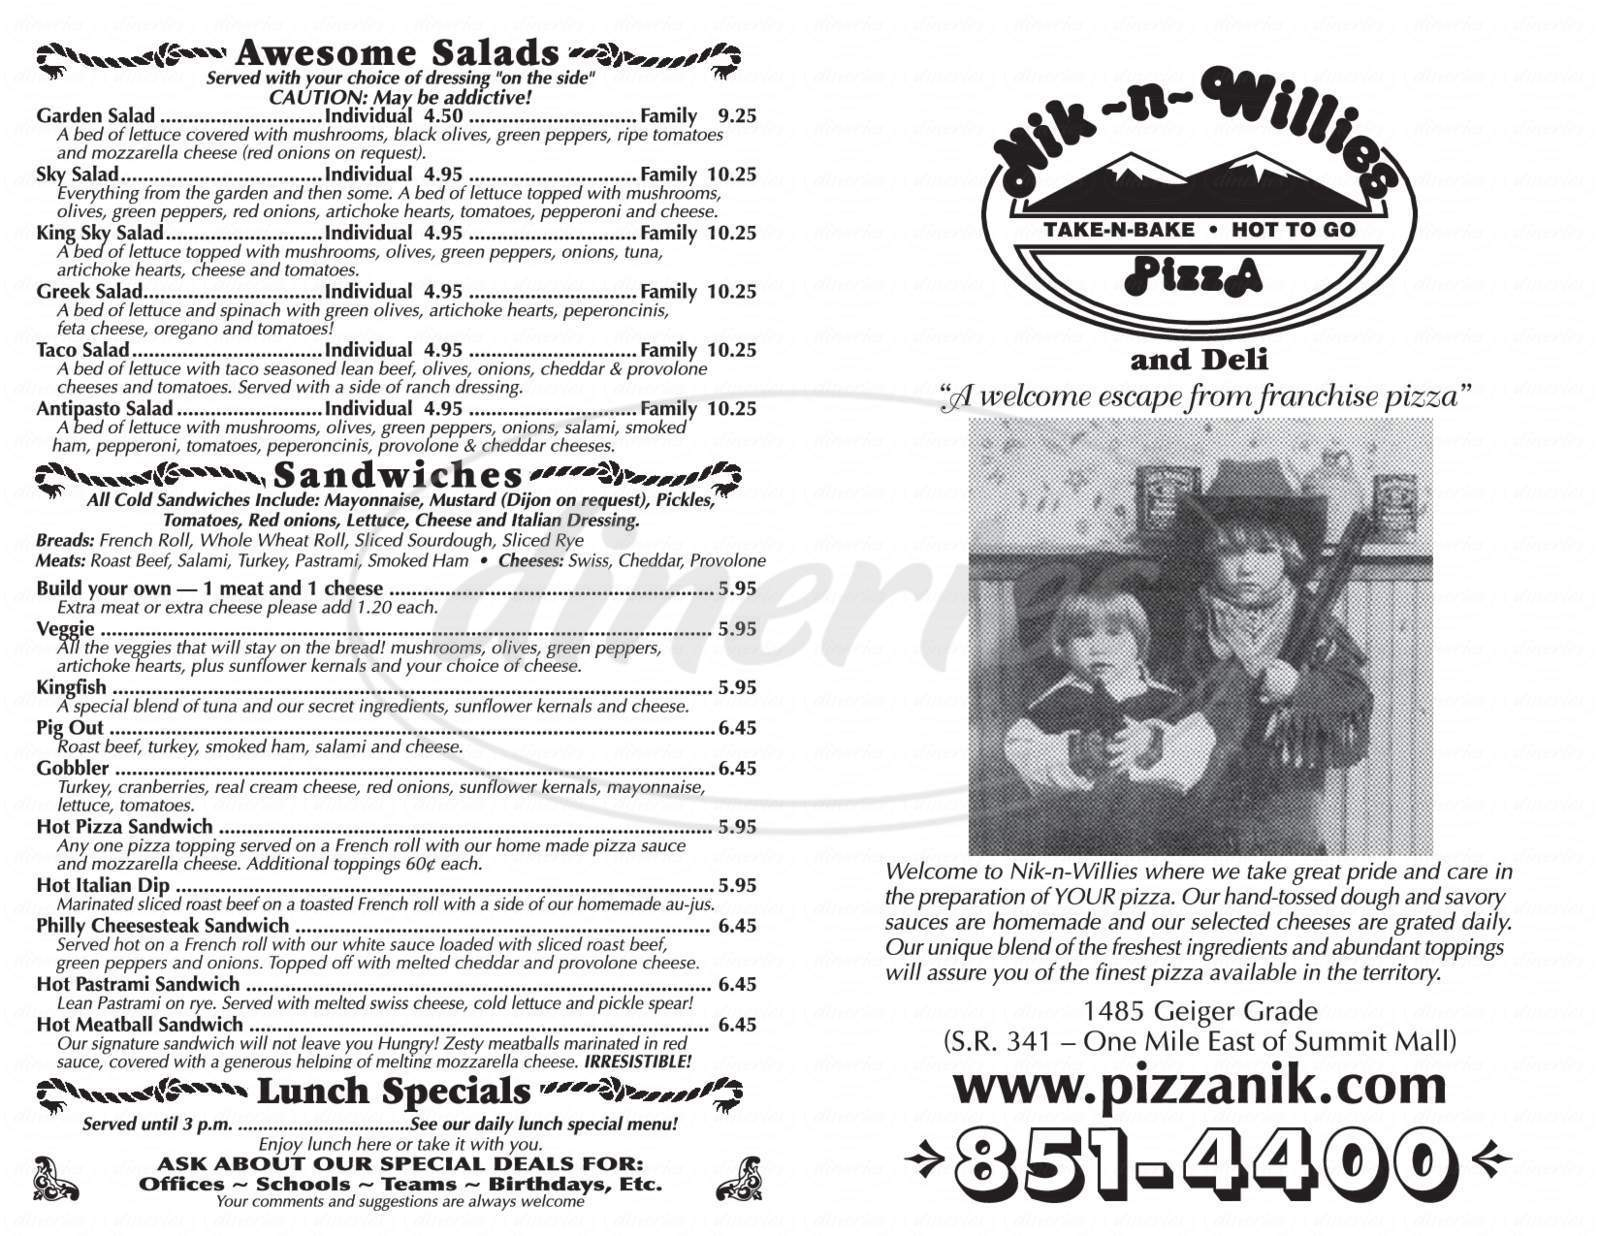 menu for Nik-N-Willies Pizza & Deli